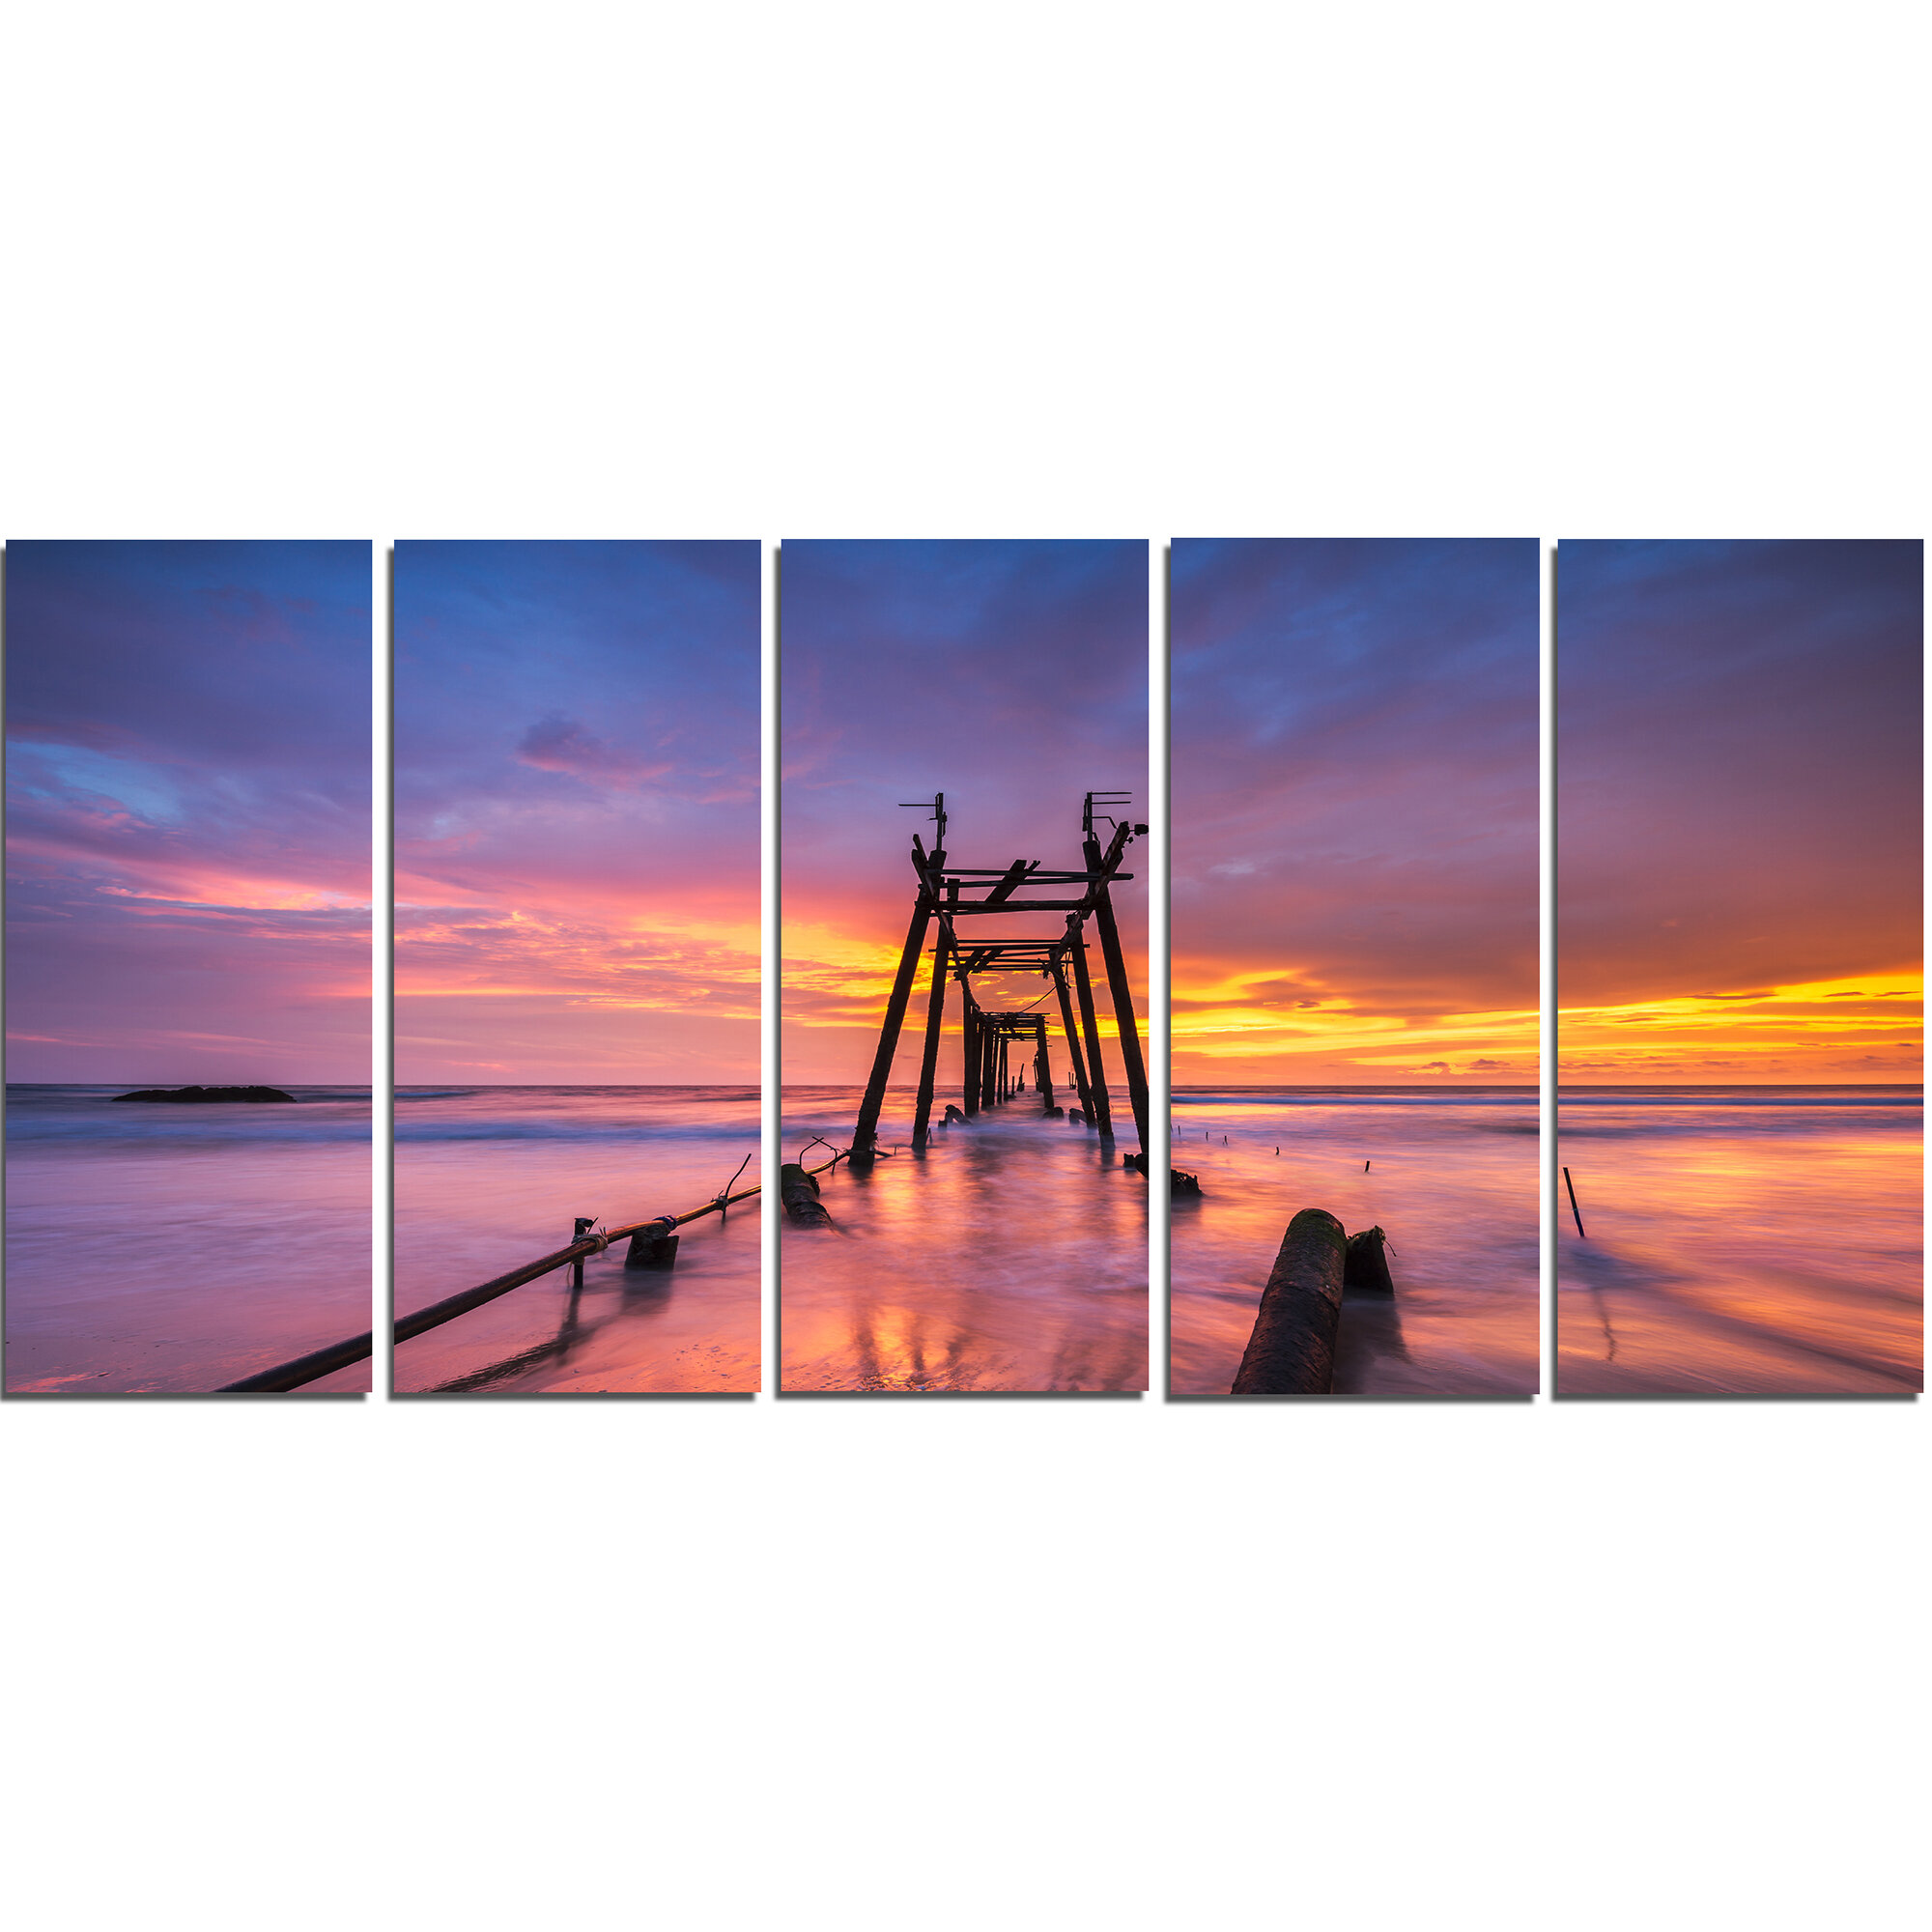 Designart Broken Wooden Bridge At Sunset 5 Piece Wall Art On Wrapped Canvas Set Wayfair